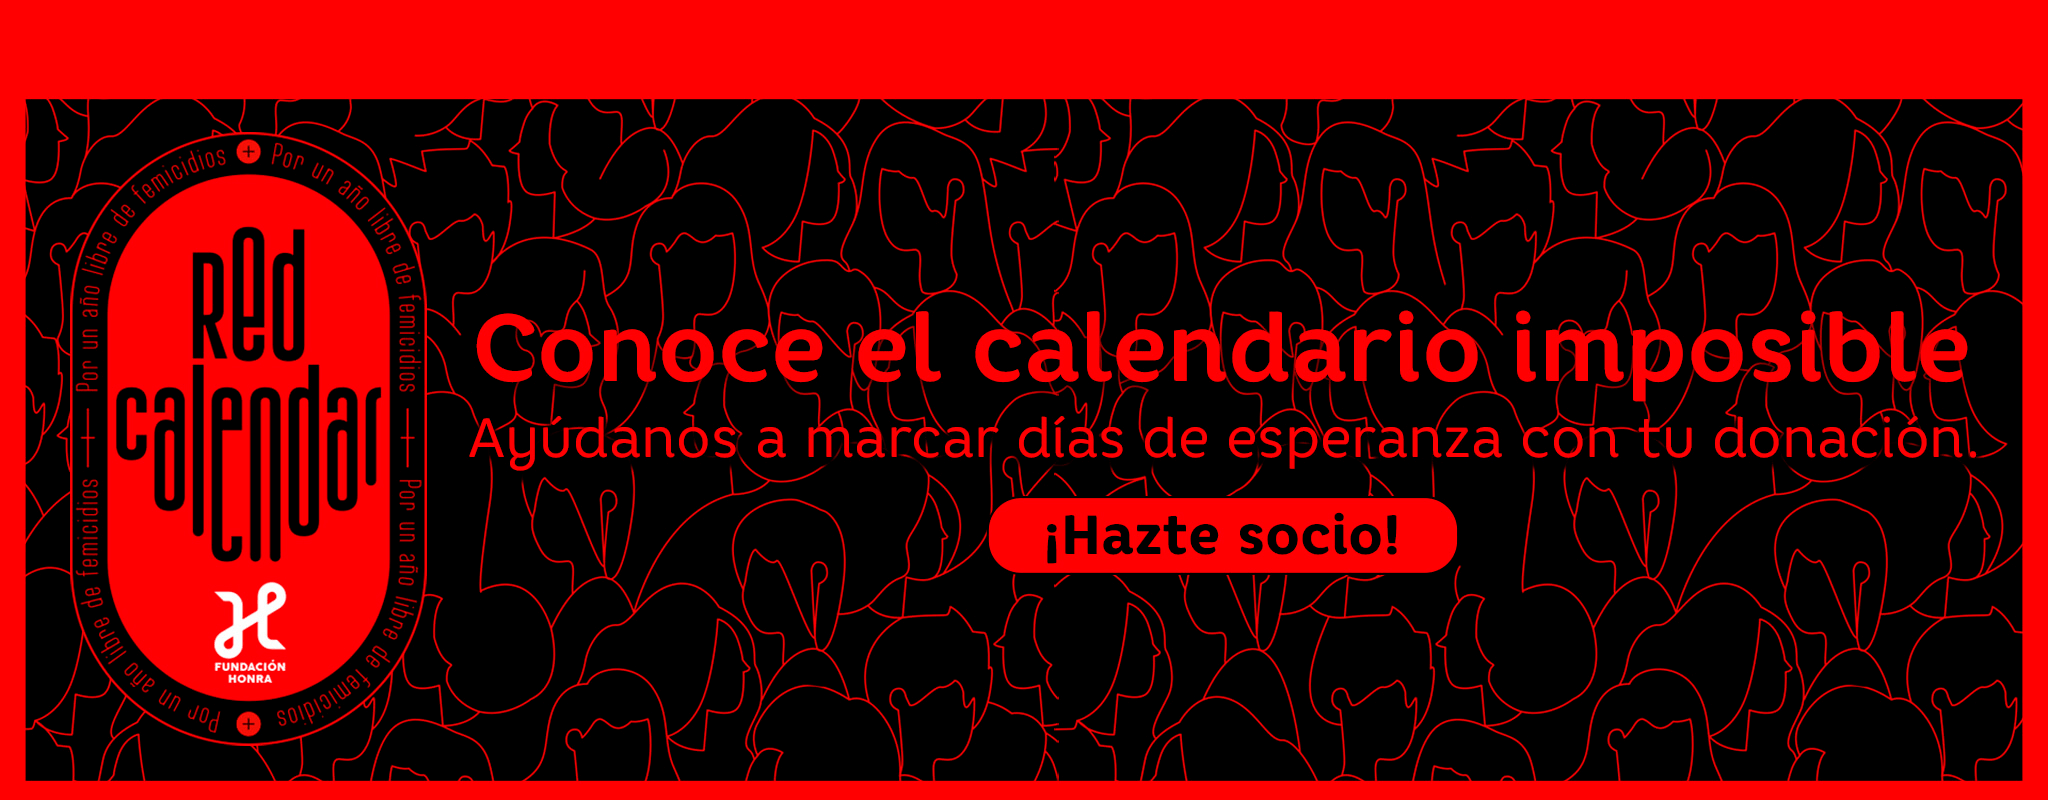 Red Calendar, un calendario imposible, pero necesario